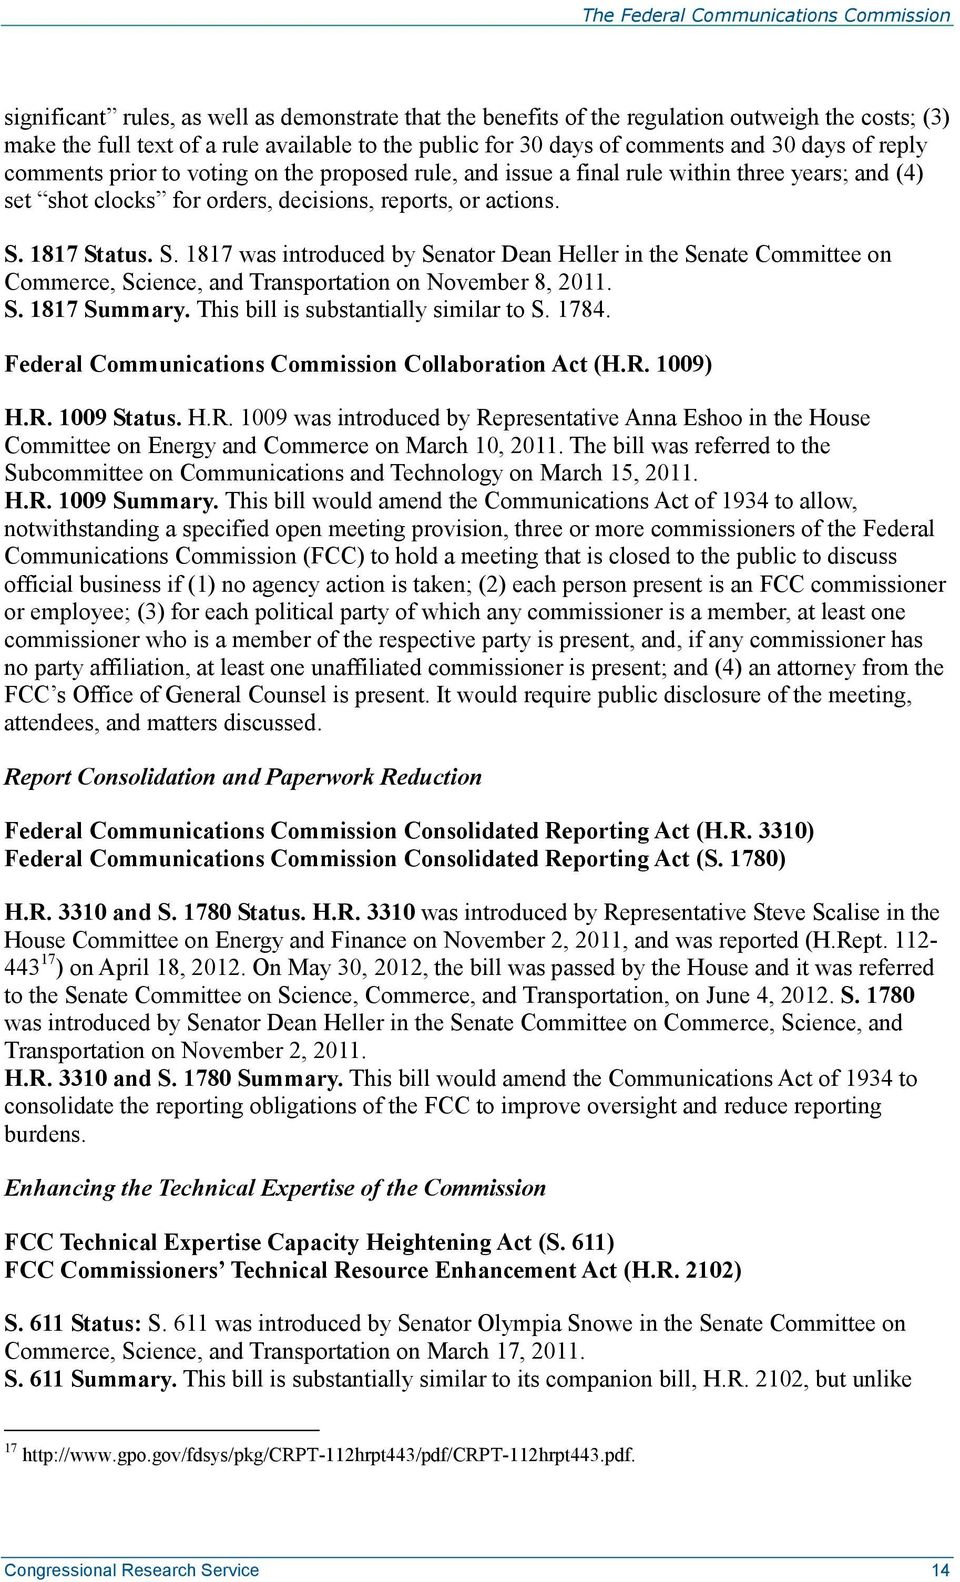 1817 Status. S. 1817 was introduced by Senator Dean Heller in the Senate Committee on Commerce, Science, and Transportation on November 8, 2011. S. 1817 Summary.